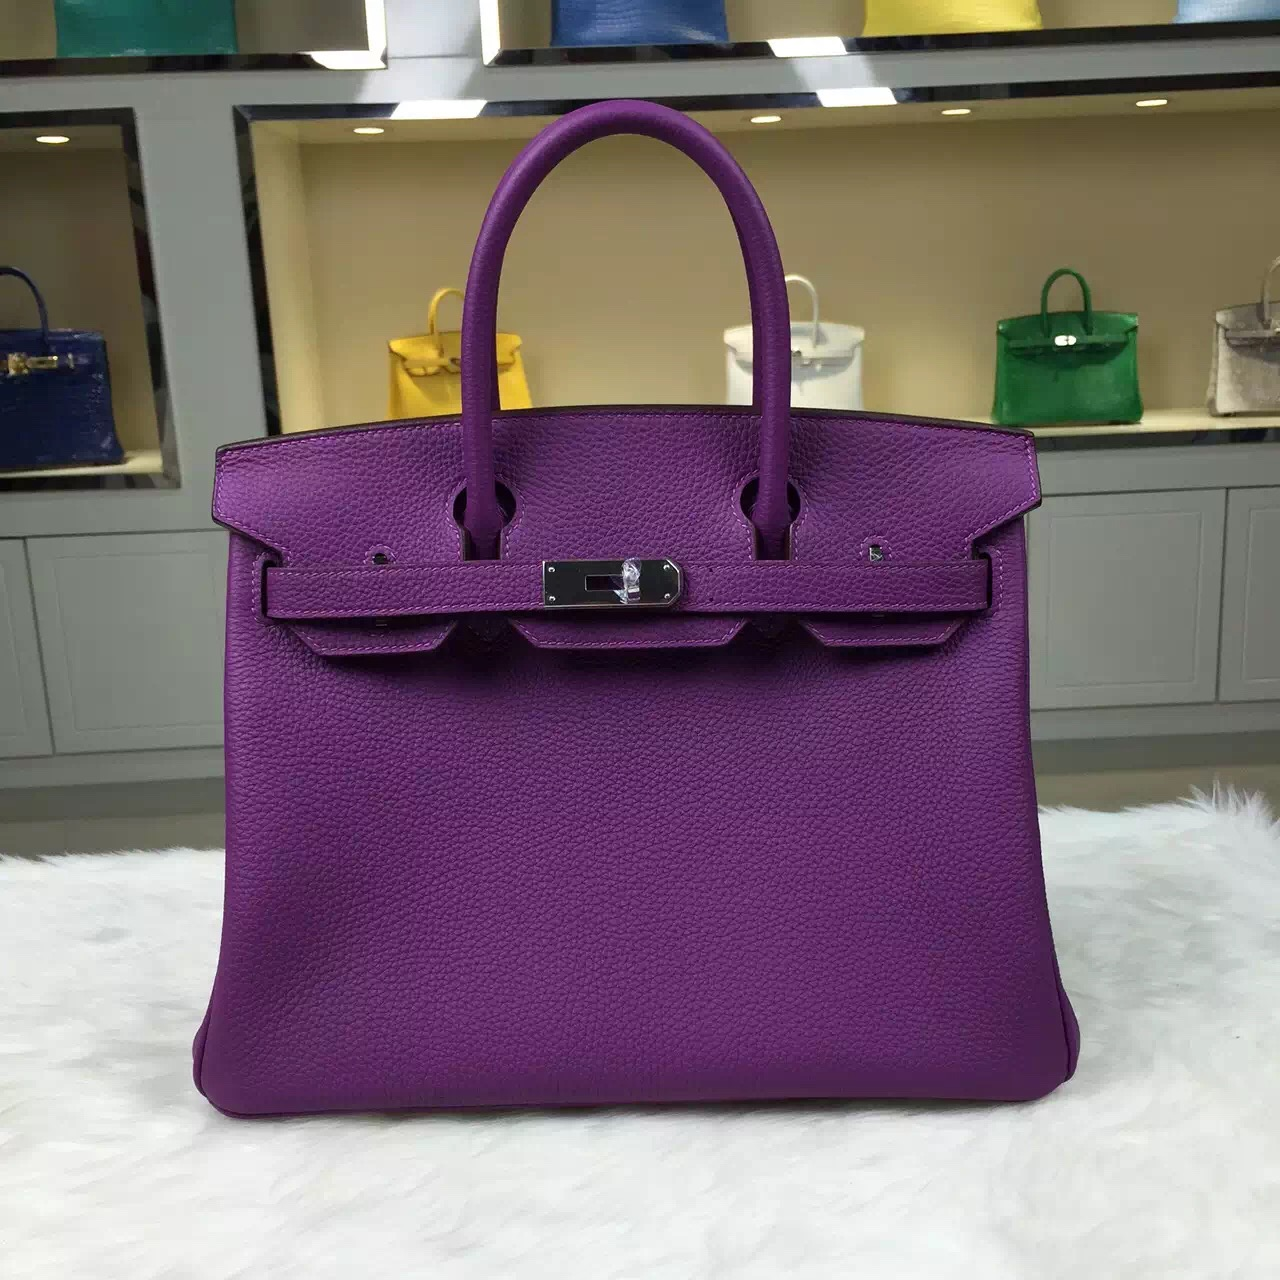 Personal Tailor Hermes P9 Anemone Purple Togo Leather Birkin Bag ...